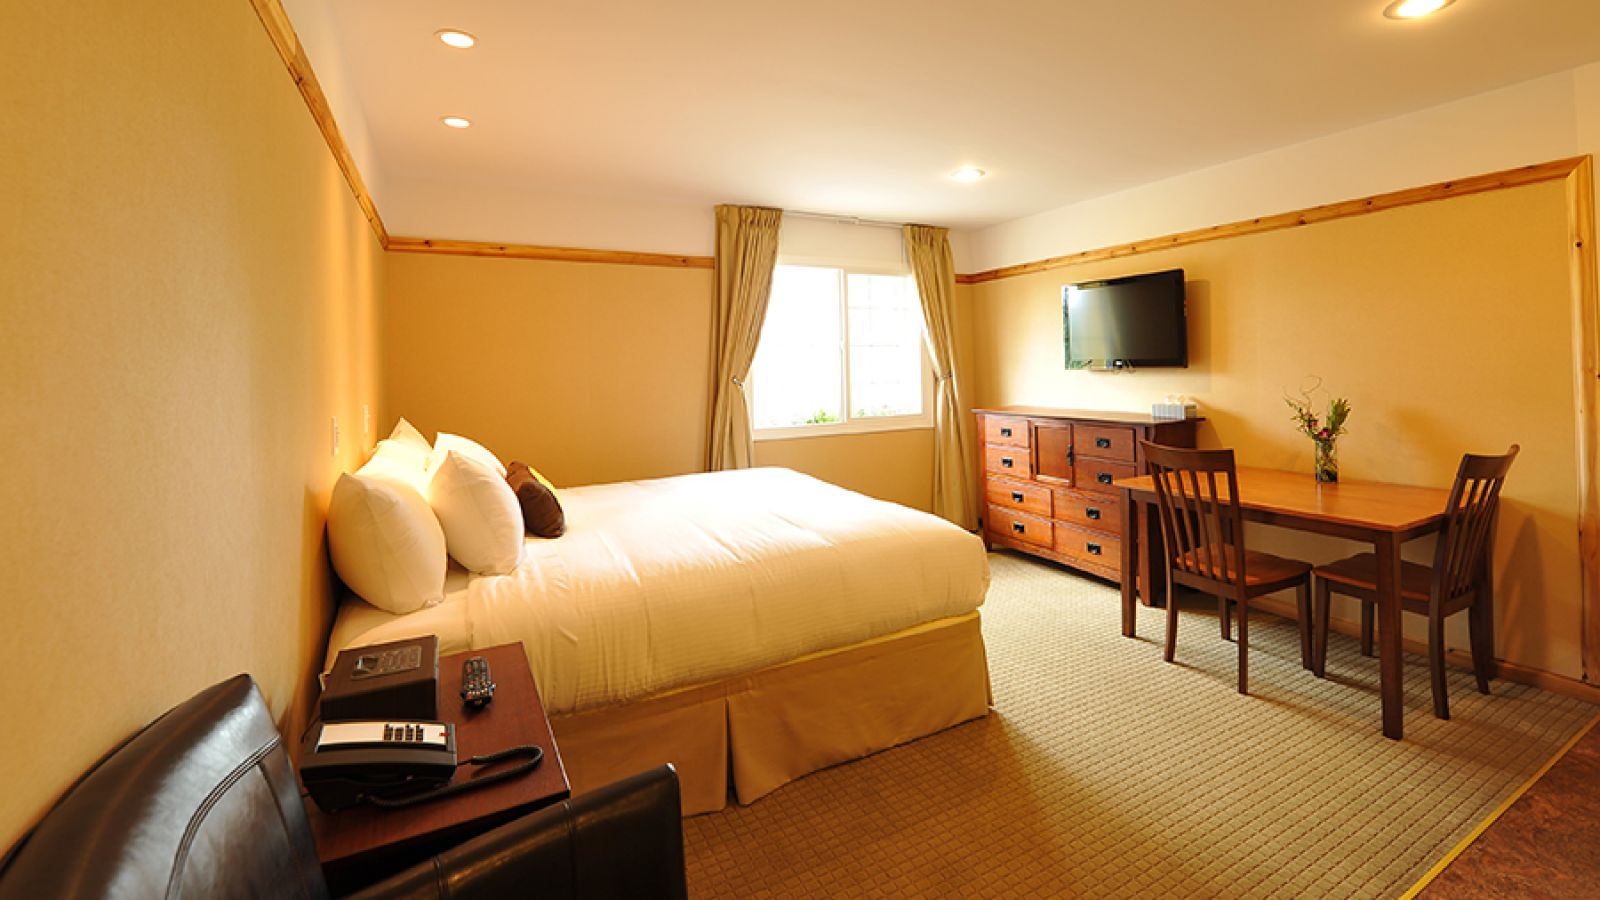 Rooms are clean, comfortable and modern.